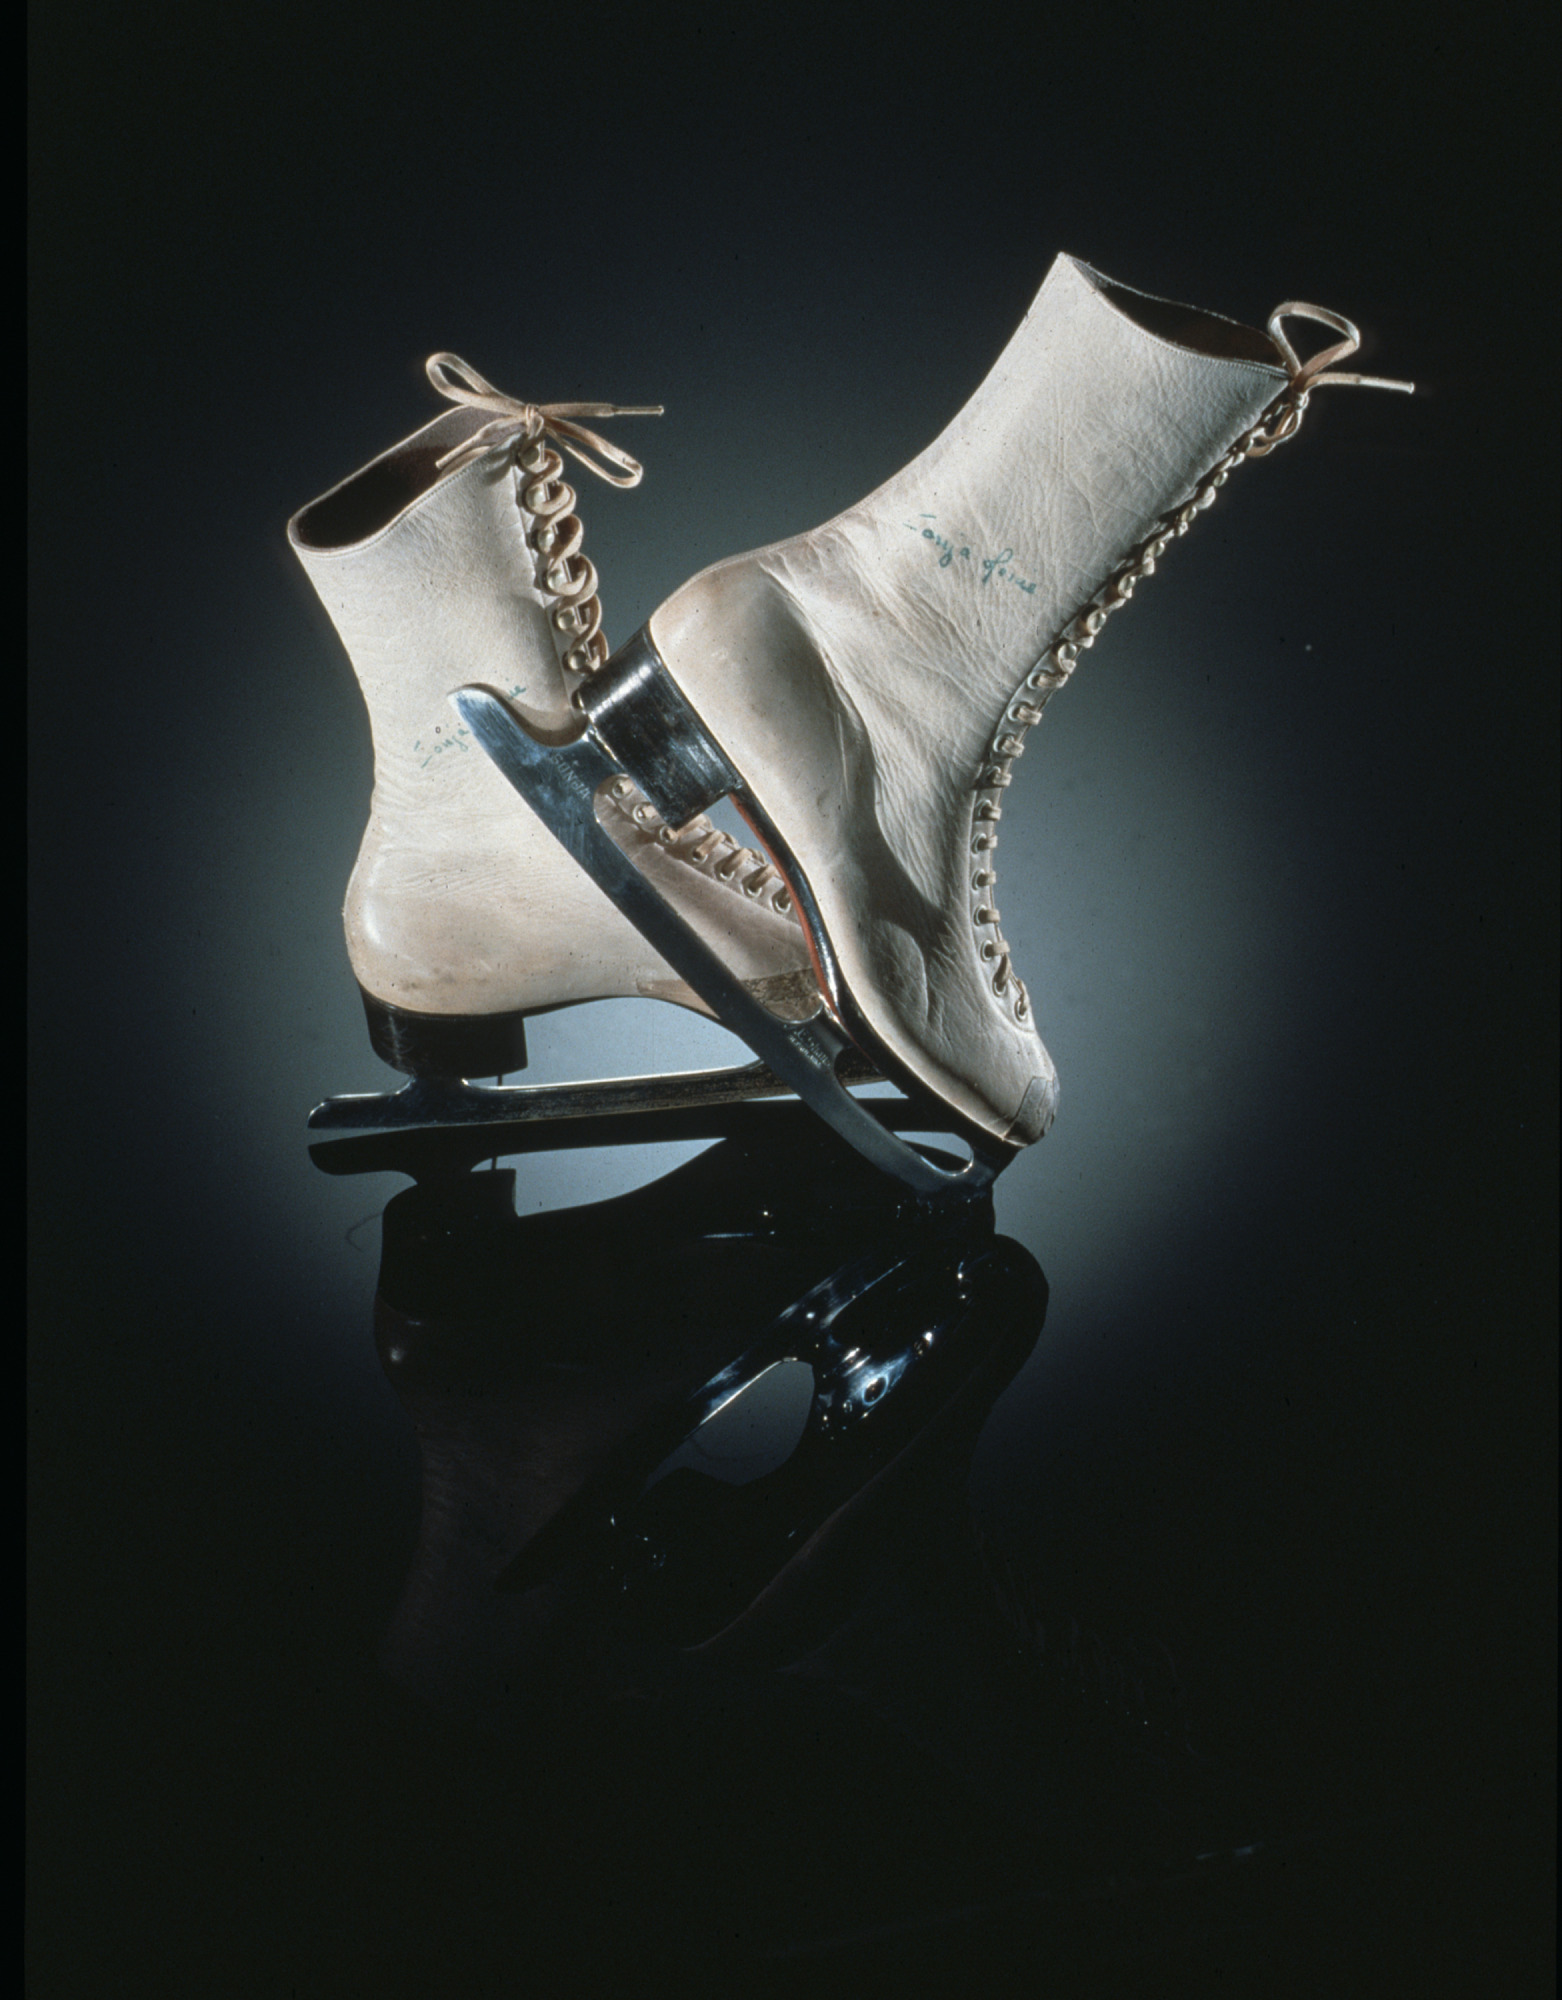 images for Ice Skates, used by Sonja Henie